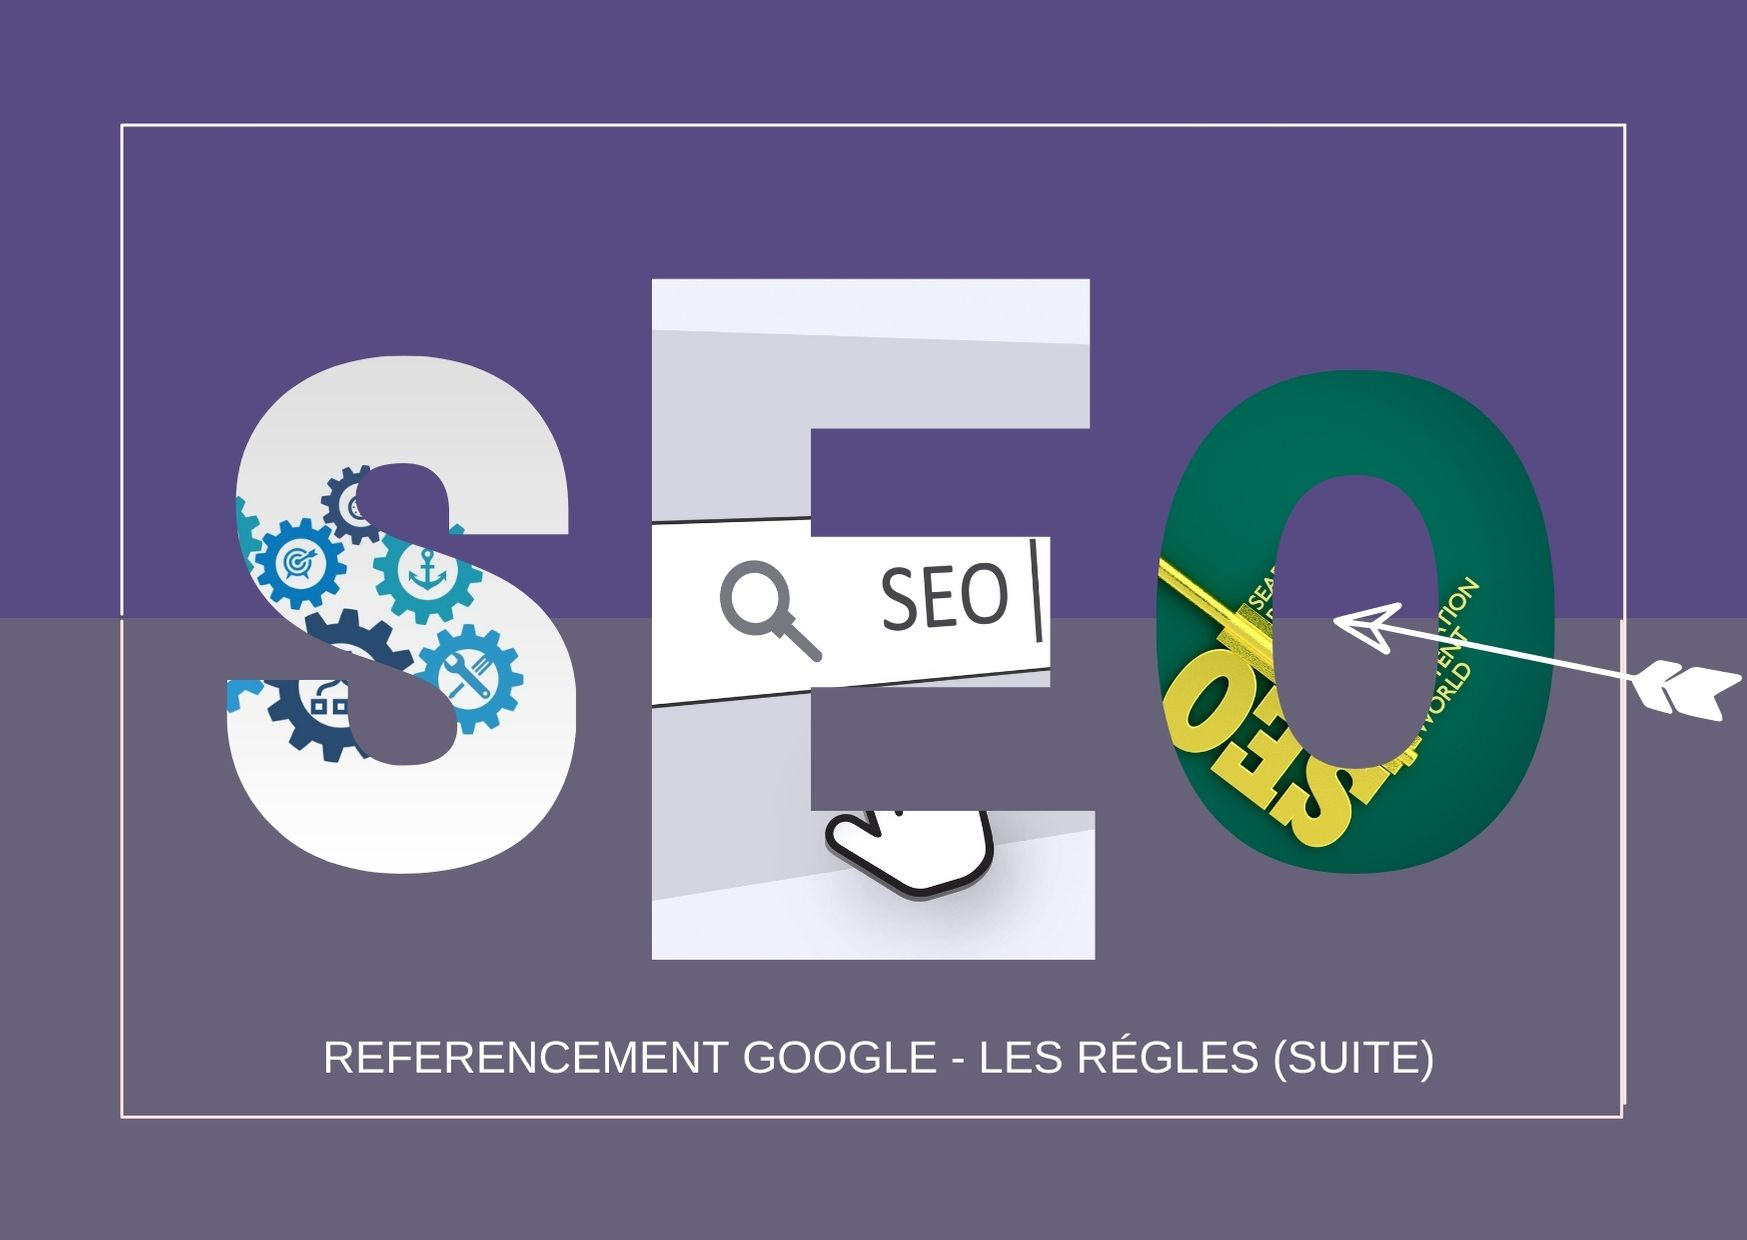 Referencement google - régles du Seo suite